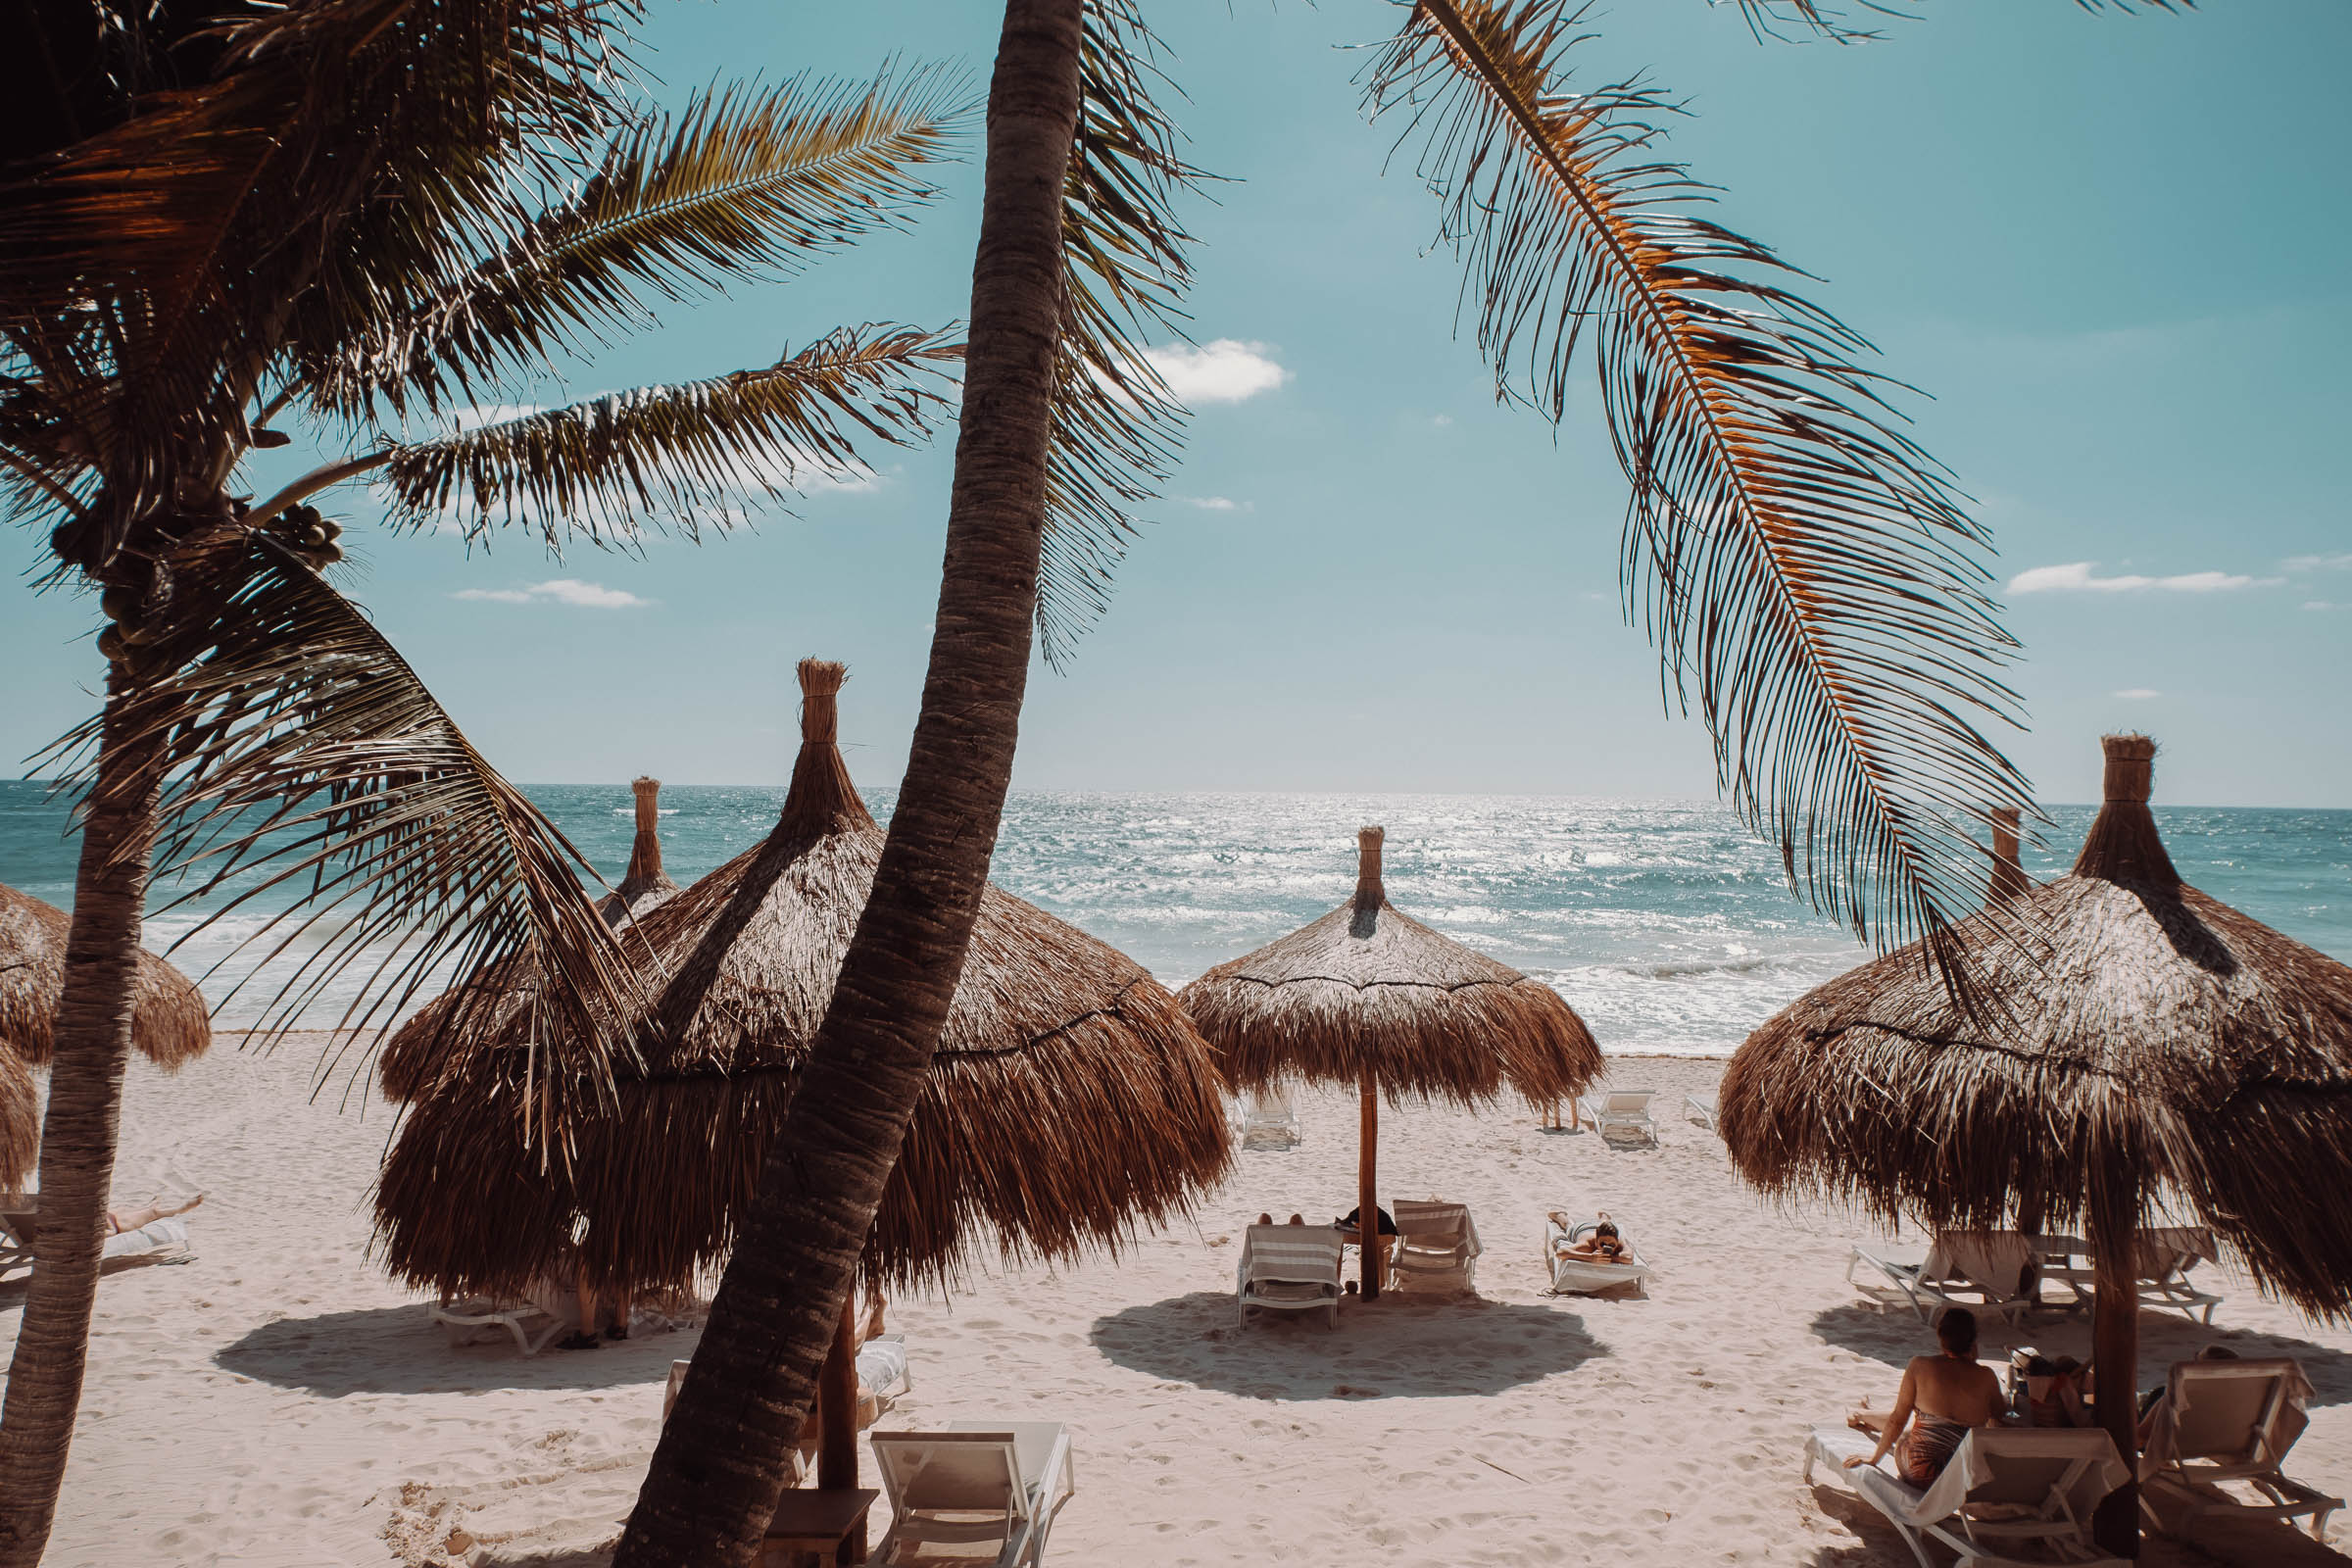 Chacon Images_Mexico2019_Web-71.jpg